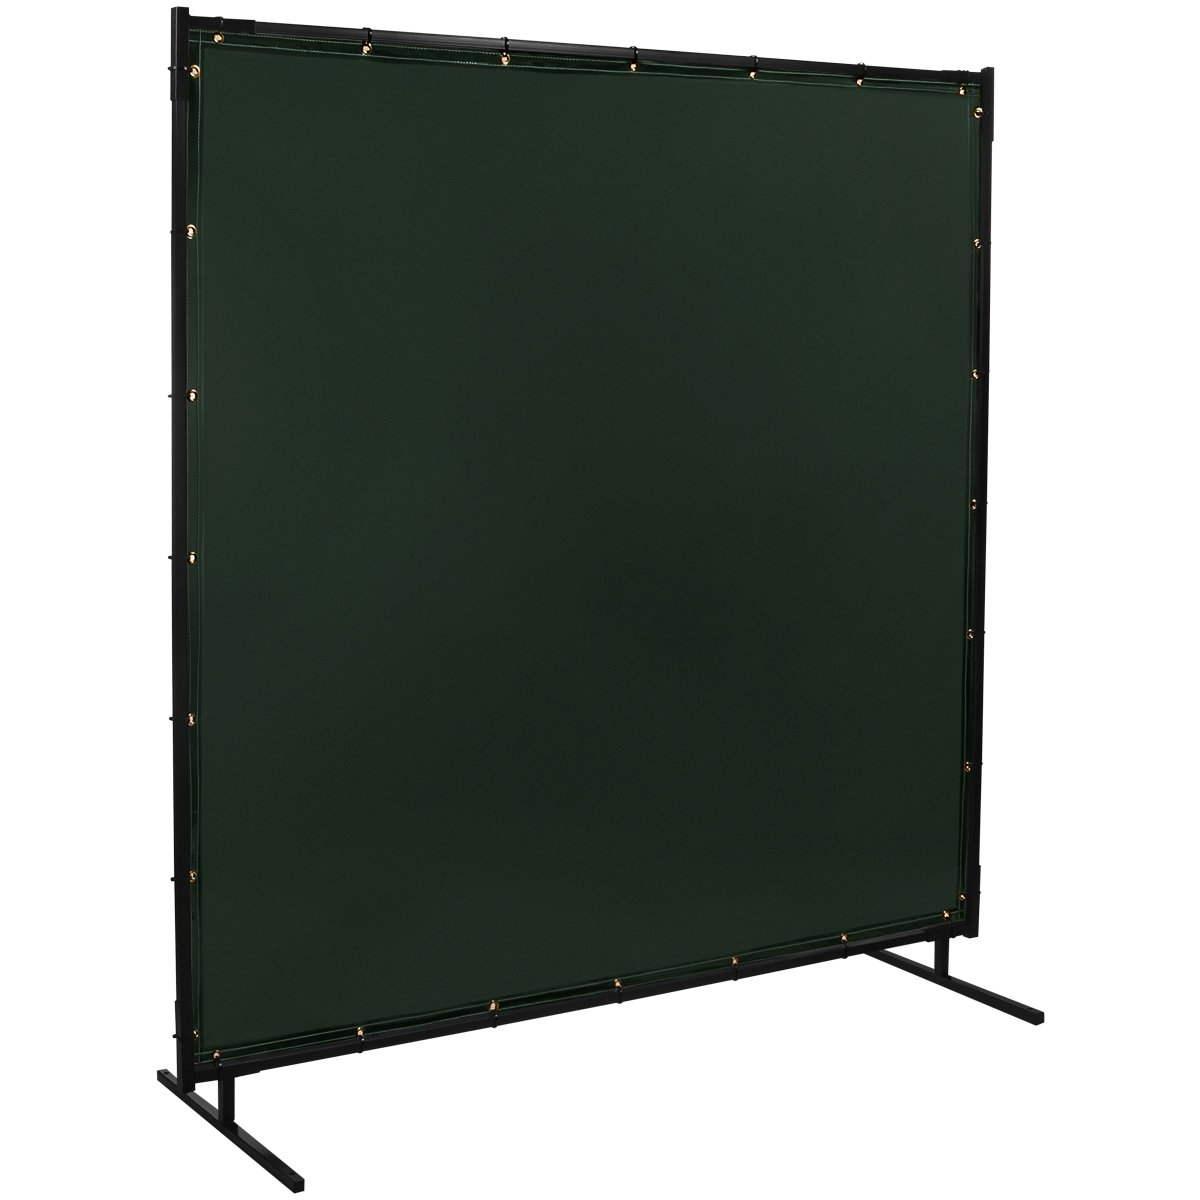 Steiner 533-6X8 Protect-O-Screen Classic Welding Screen with Flame Retardant 14 Mil Tinted Transparent Vinyl Curtain, Green, 6' x 8'